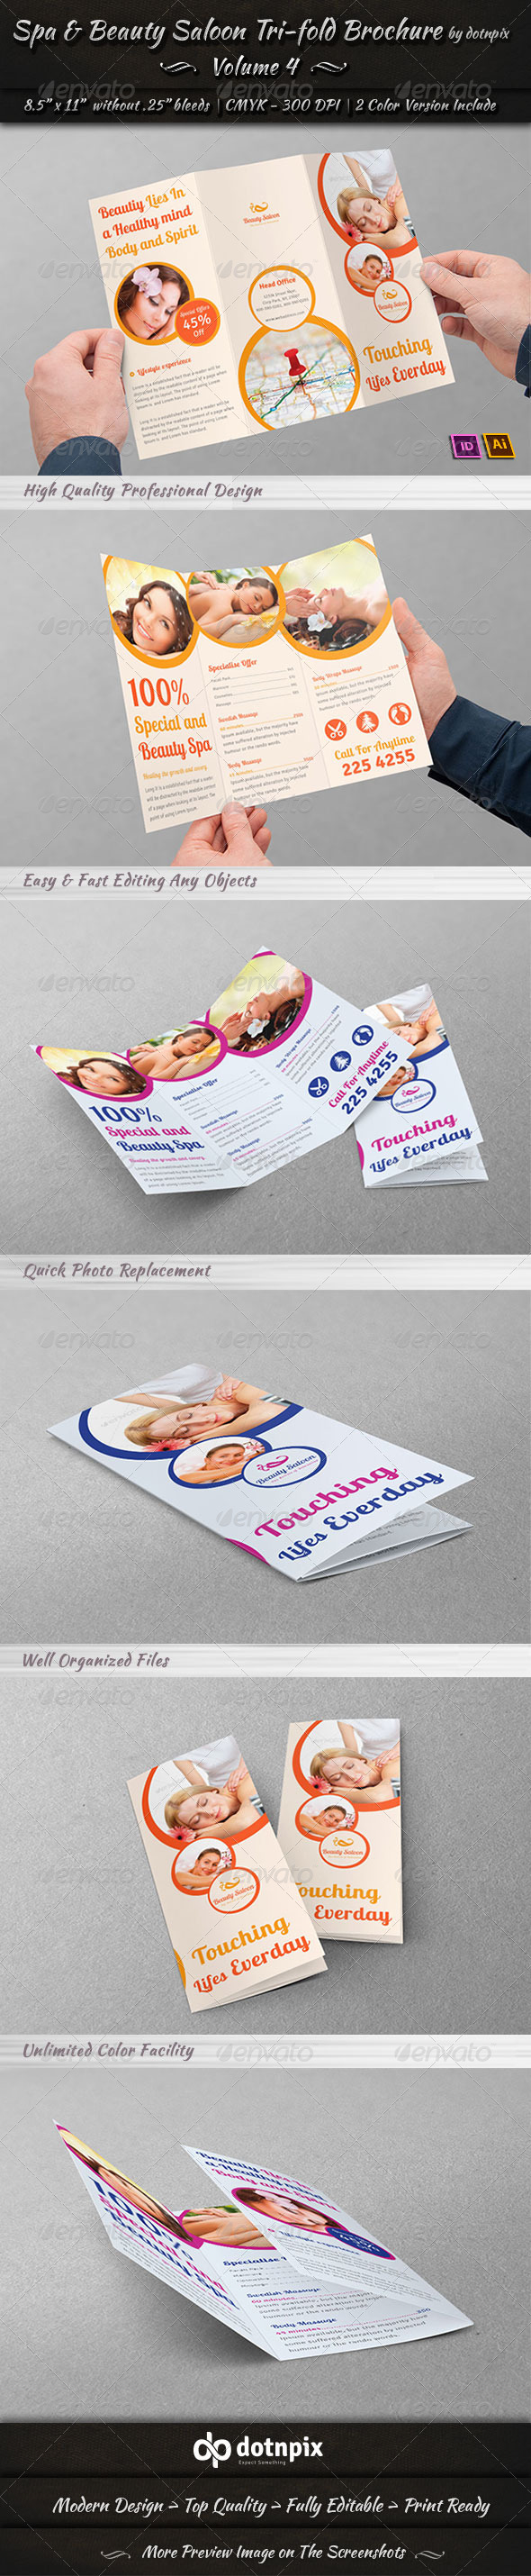 GraphicRiver Spa & Beauty Saloon Tri-Fold Brochure Volume 4 7879436